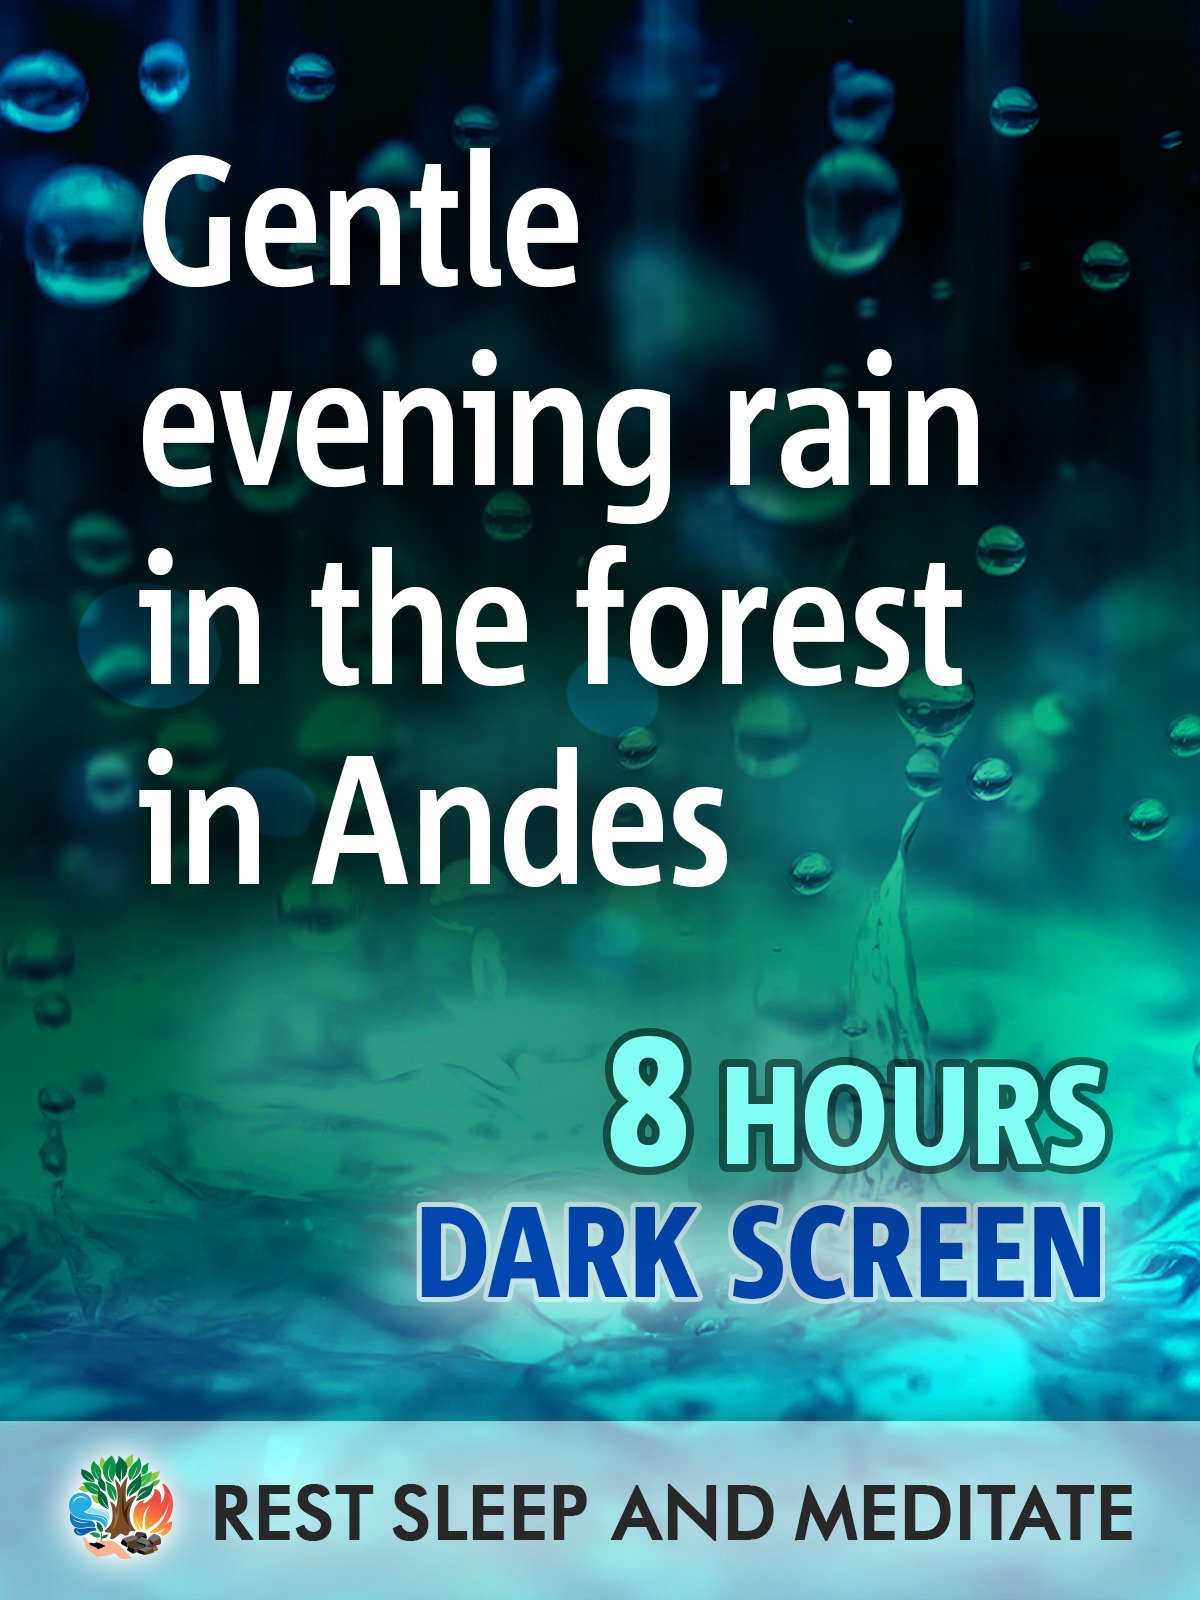 Gentle evening rain in tropical forest, 8 hours, dark screen on Amazon Prime Instant Video UK